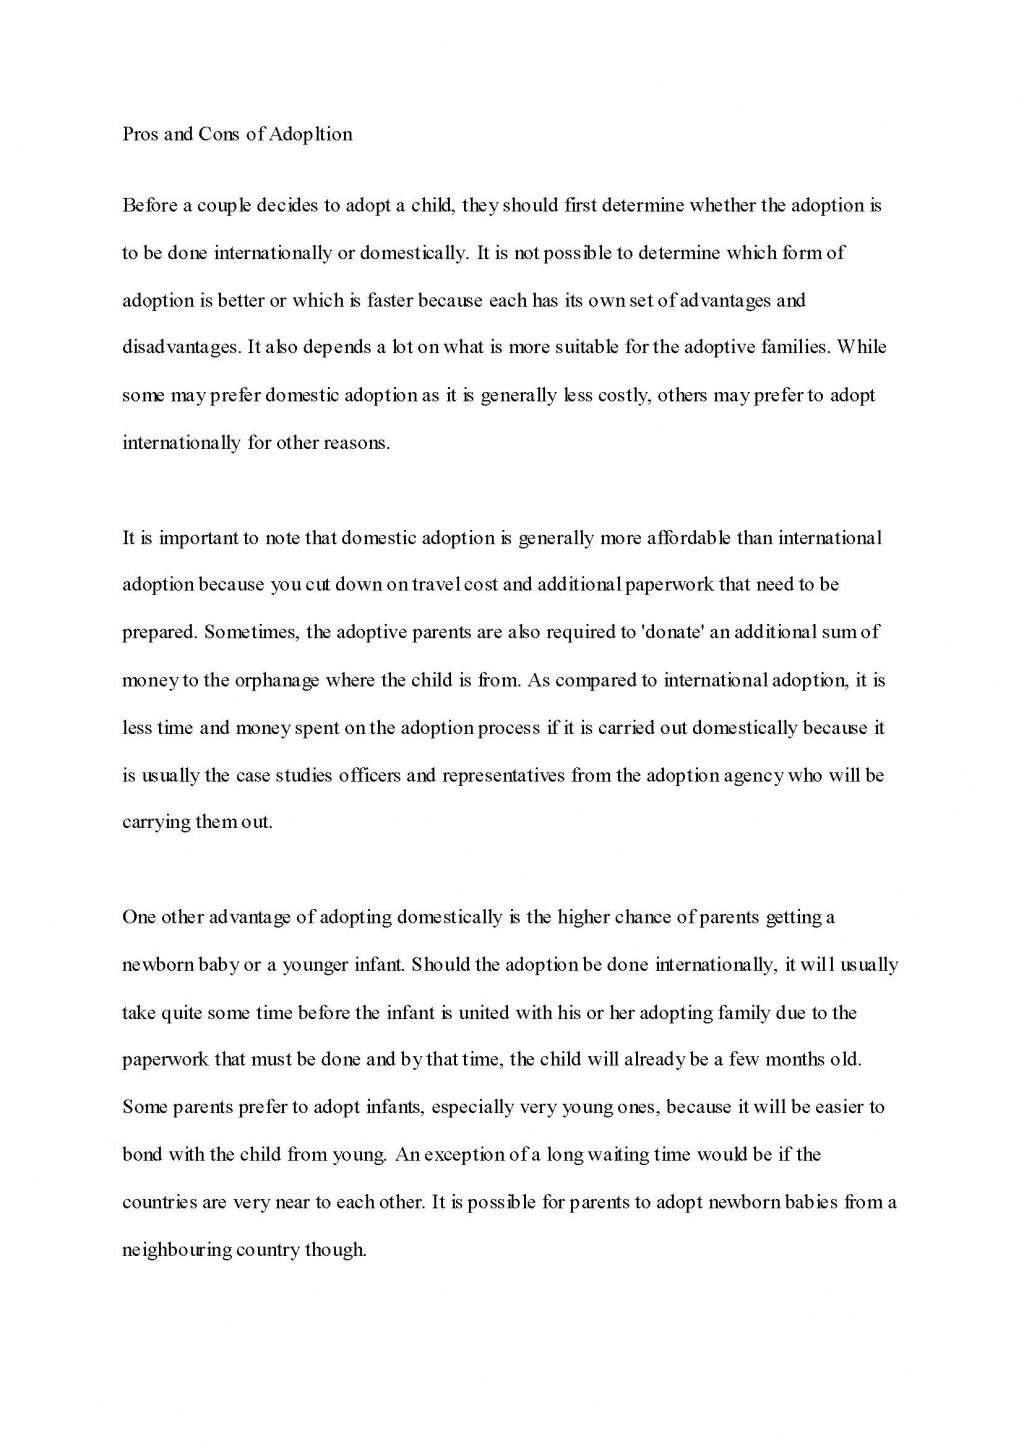 016 Examples Of Persuasive Essays Essay Example Adoption Excellent 5th Grade Written By Graders Argumentative-persuasive Topics Large